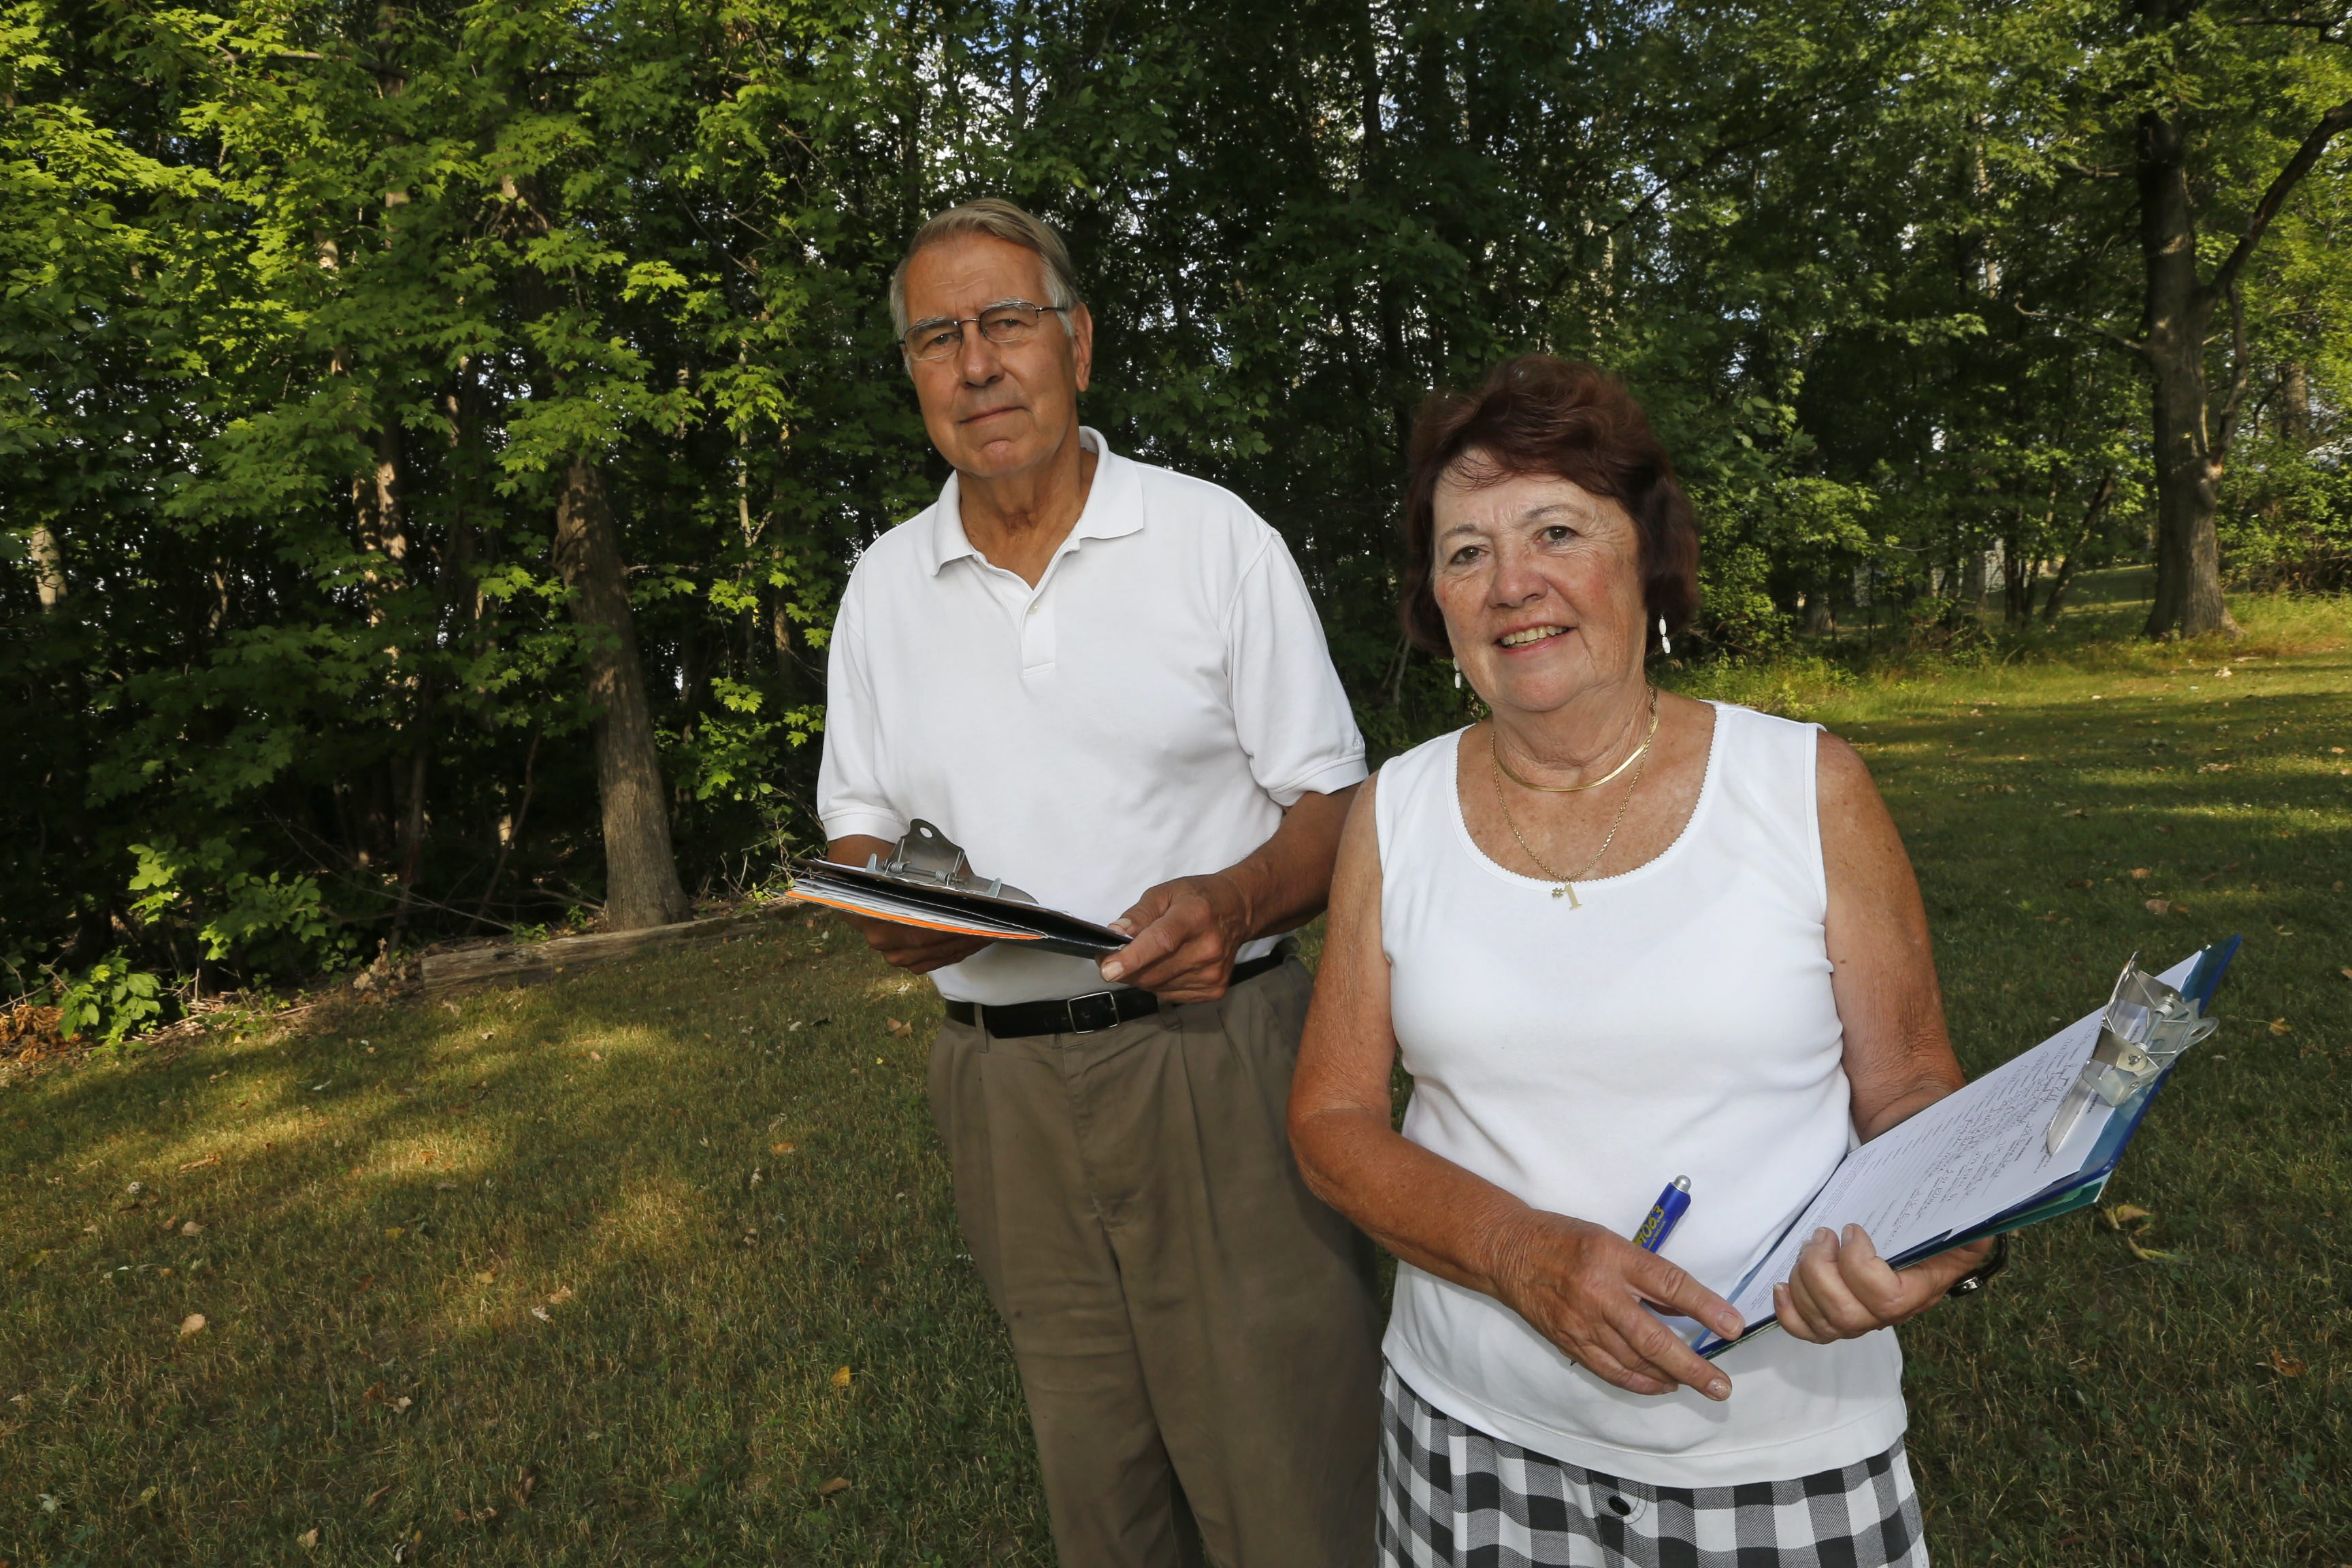 Joan Priebe and Irvine. G. Reinig II have been soliciting signatures to cause a referendum to dissolve the Village of Depew. This was on Friday, July 15, 2016. (Robert Kirkham/Buffalo News)